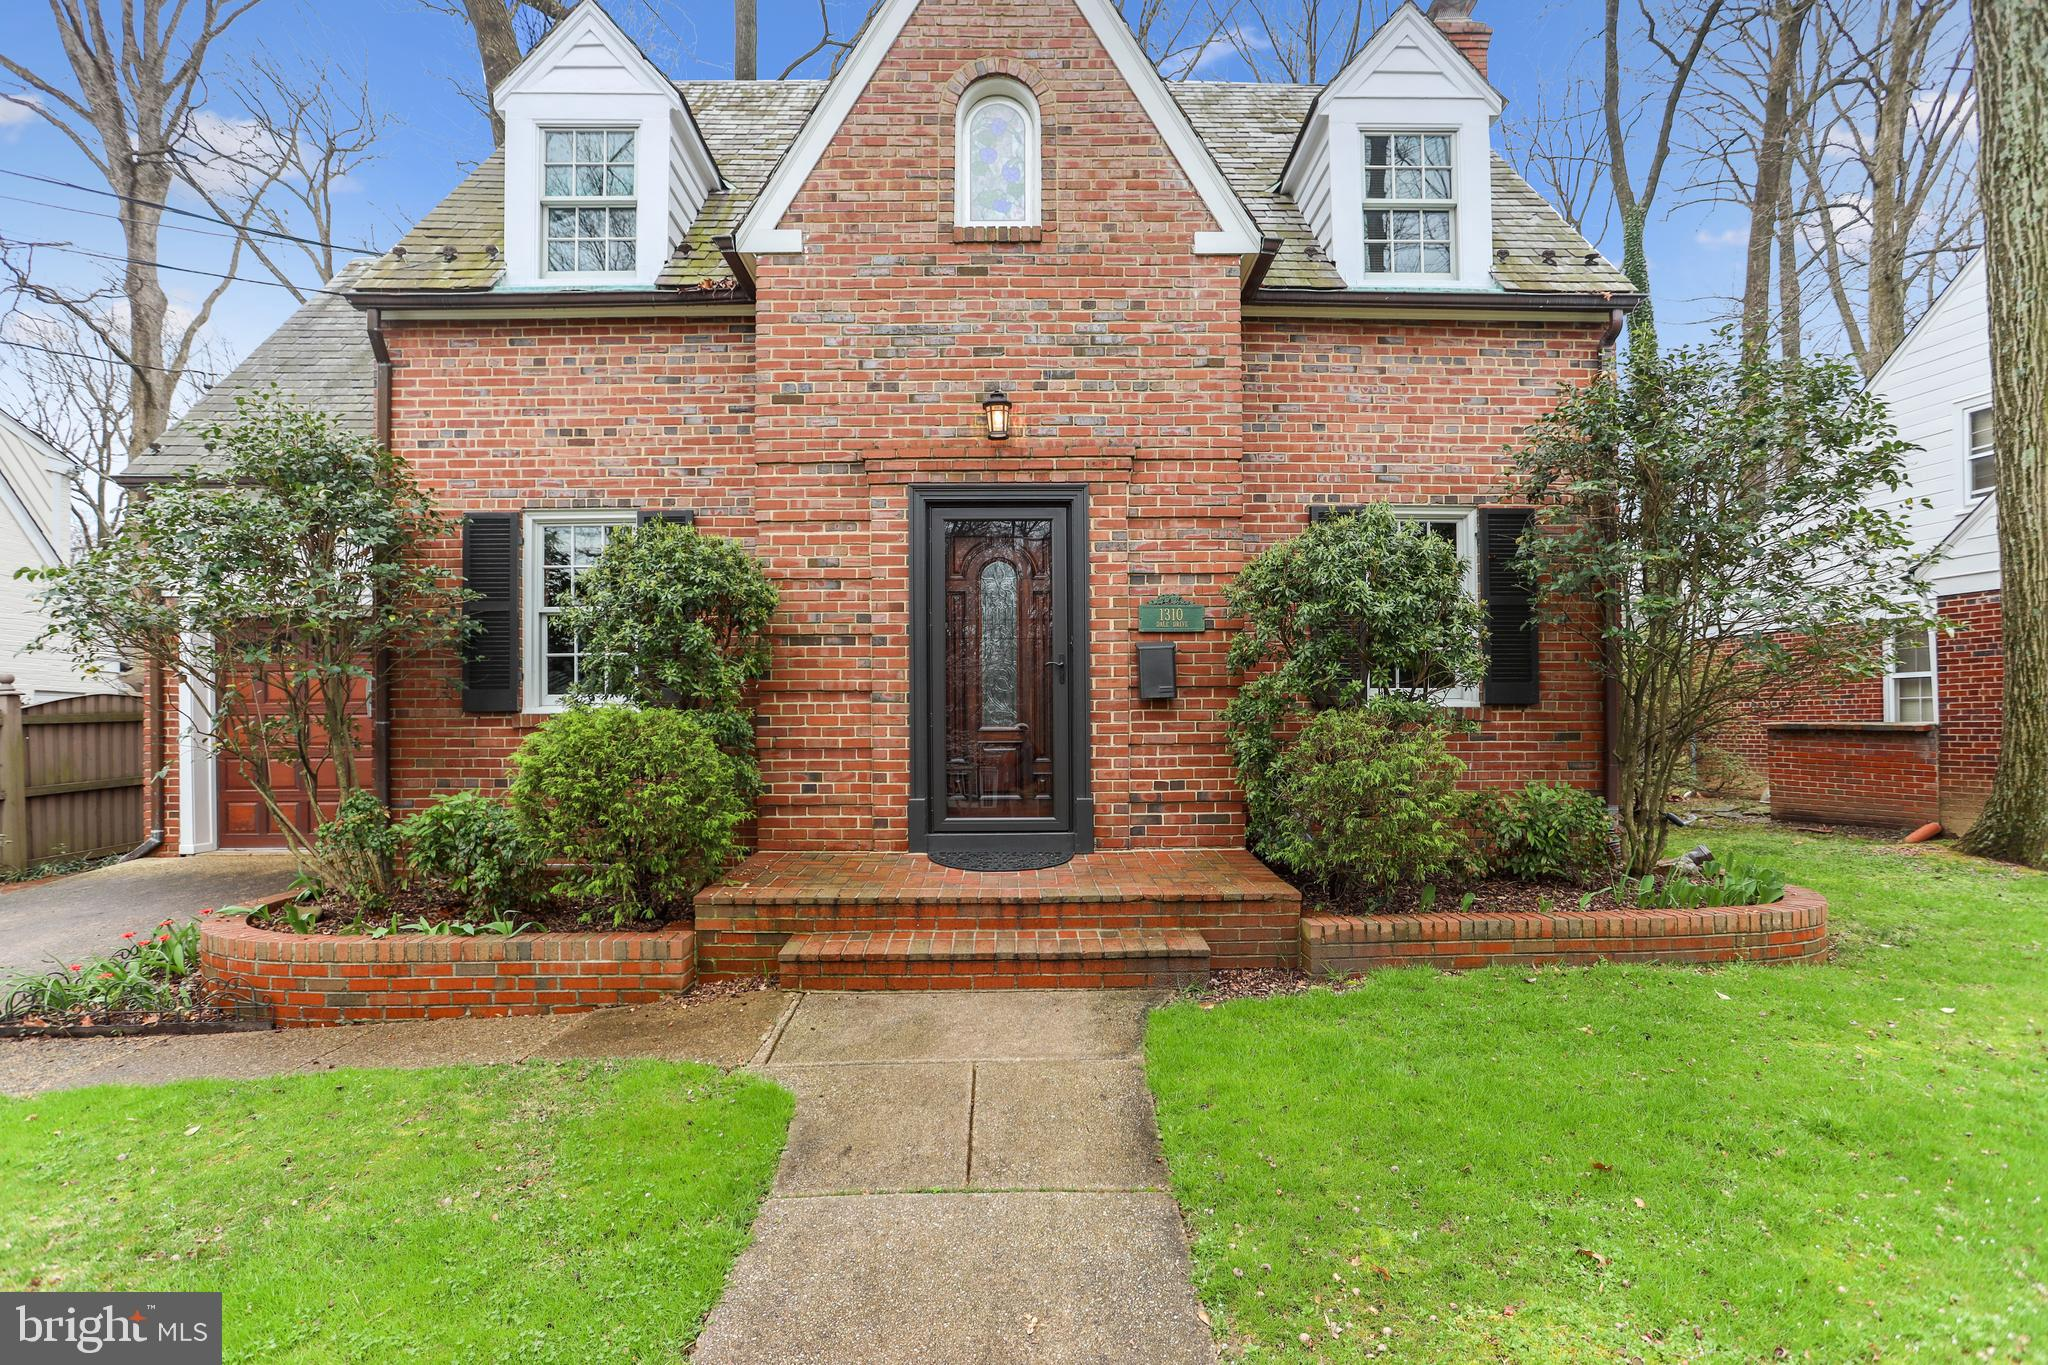 1310 Dale Drive, Silver Spring, MD 20910